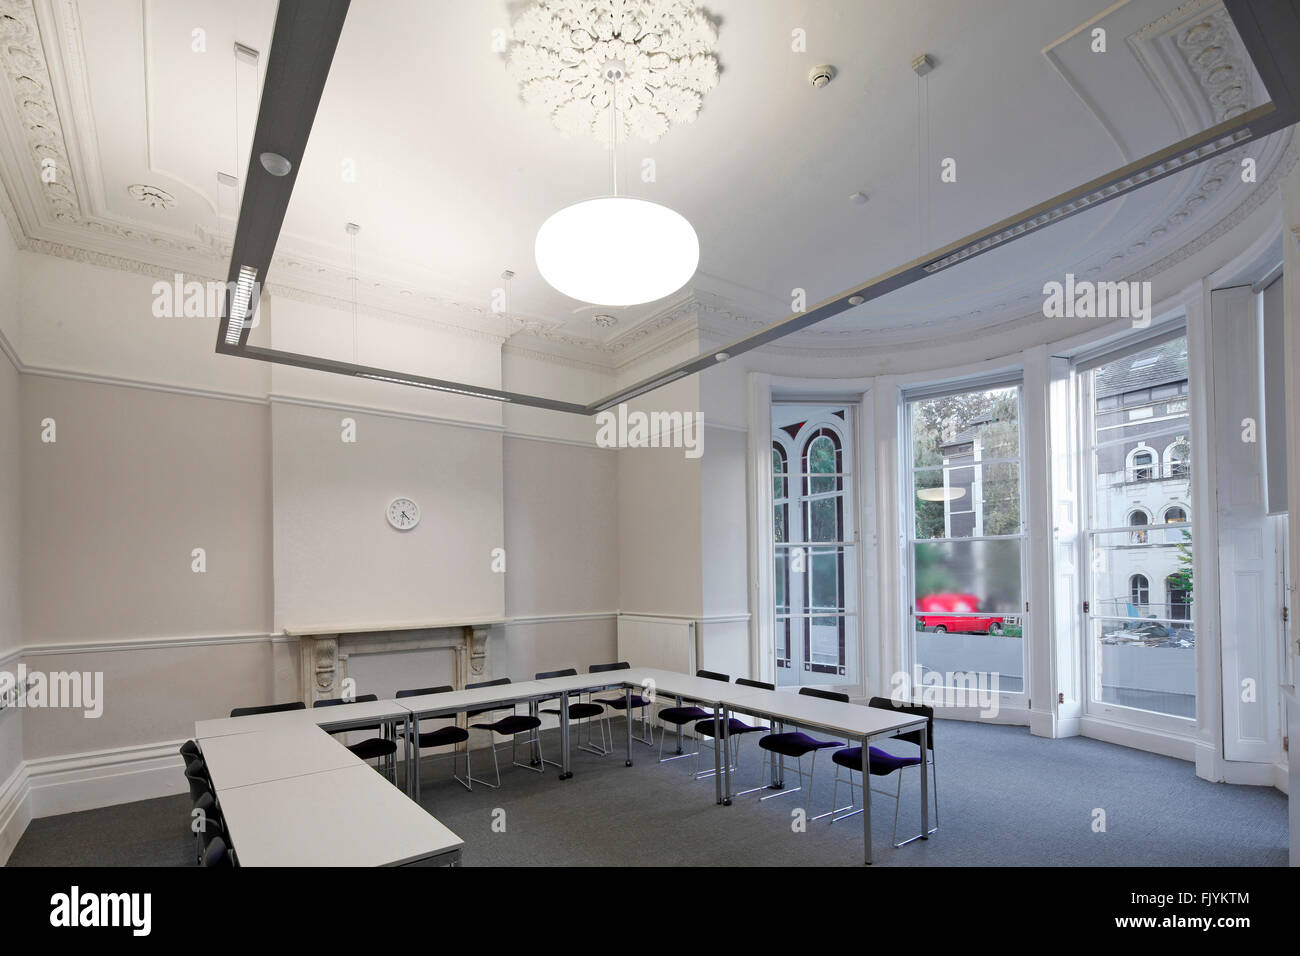 Tyndalls Park Road, Refurbishment Of University Teaching And Administration  Spaces. Plasterwork Ceiling.